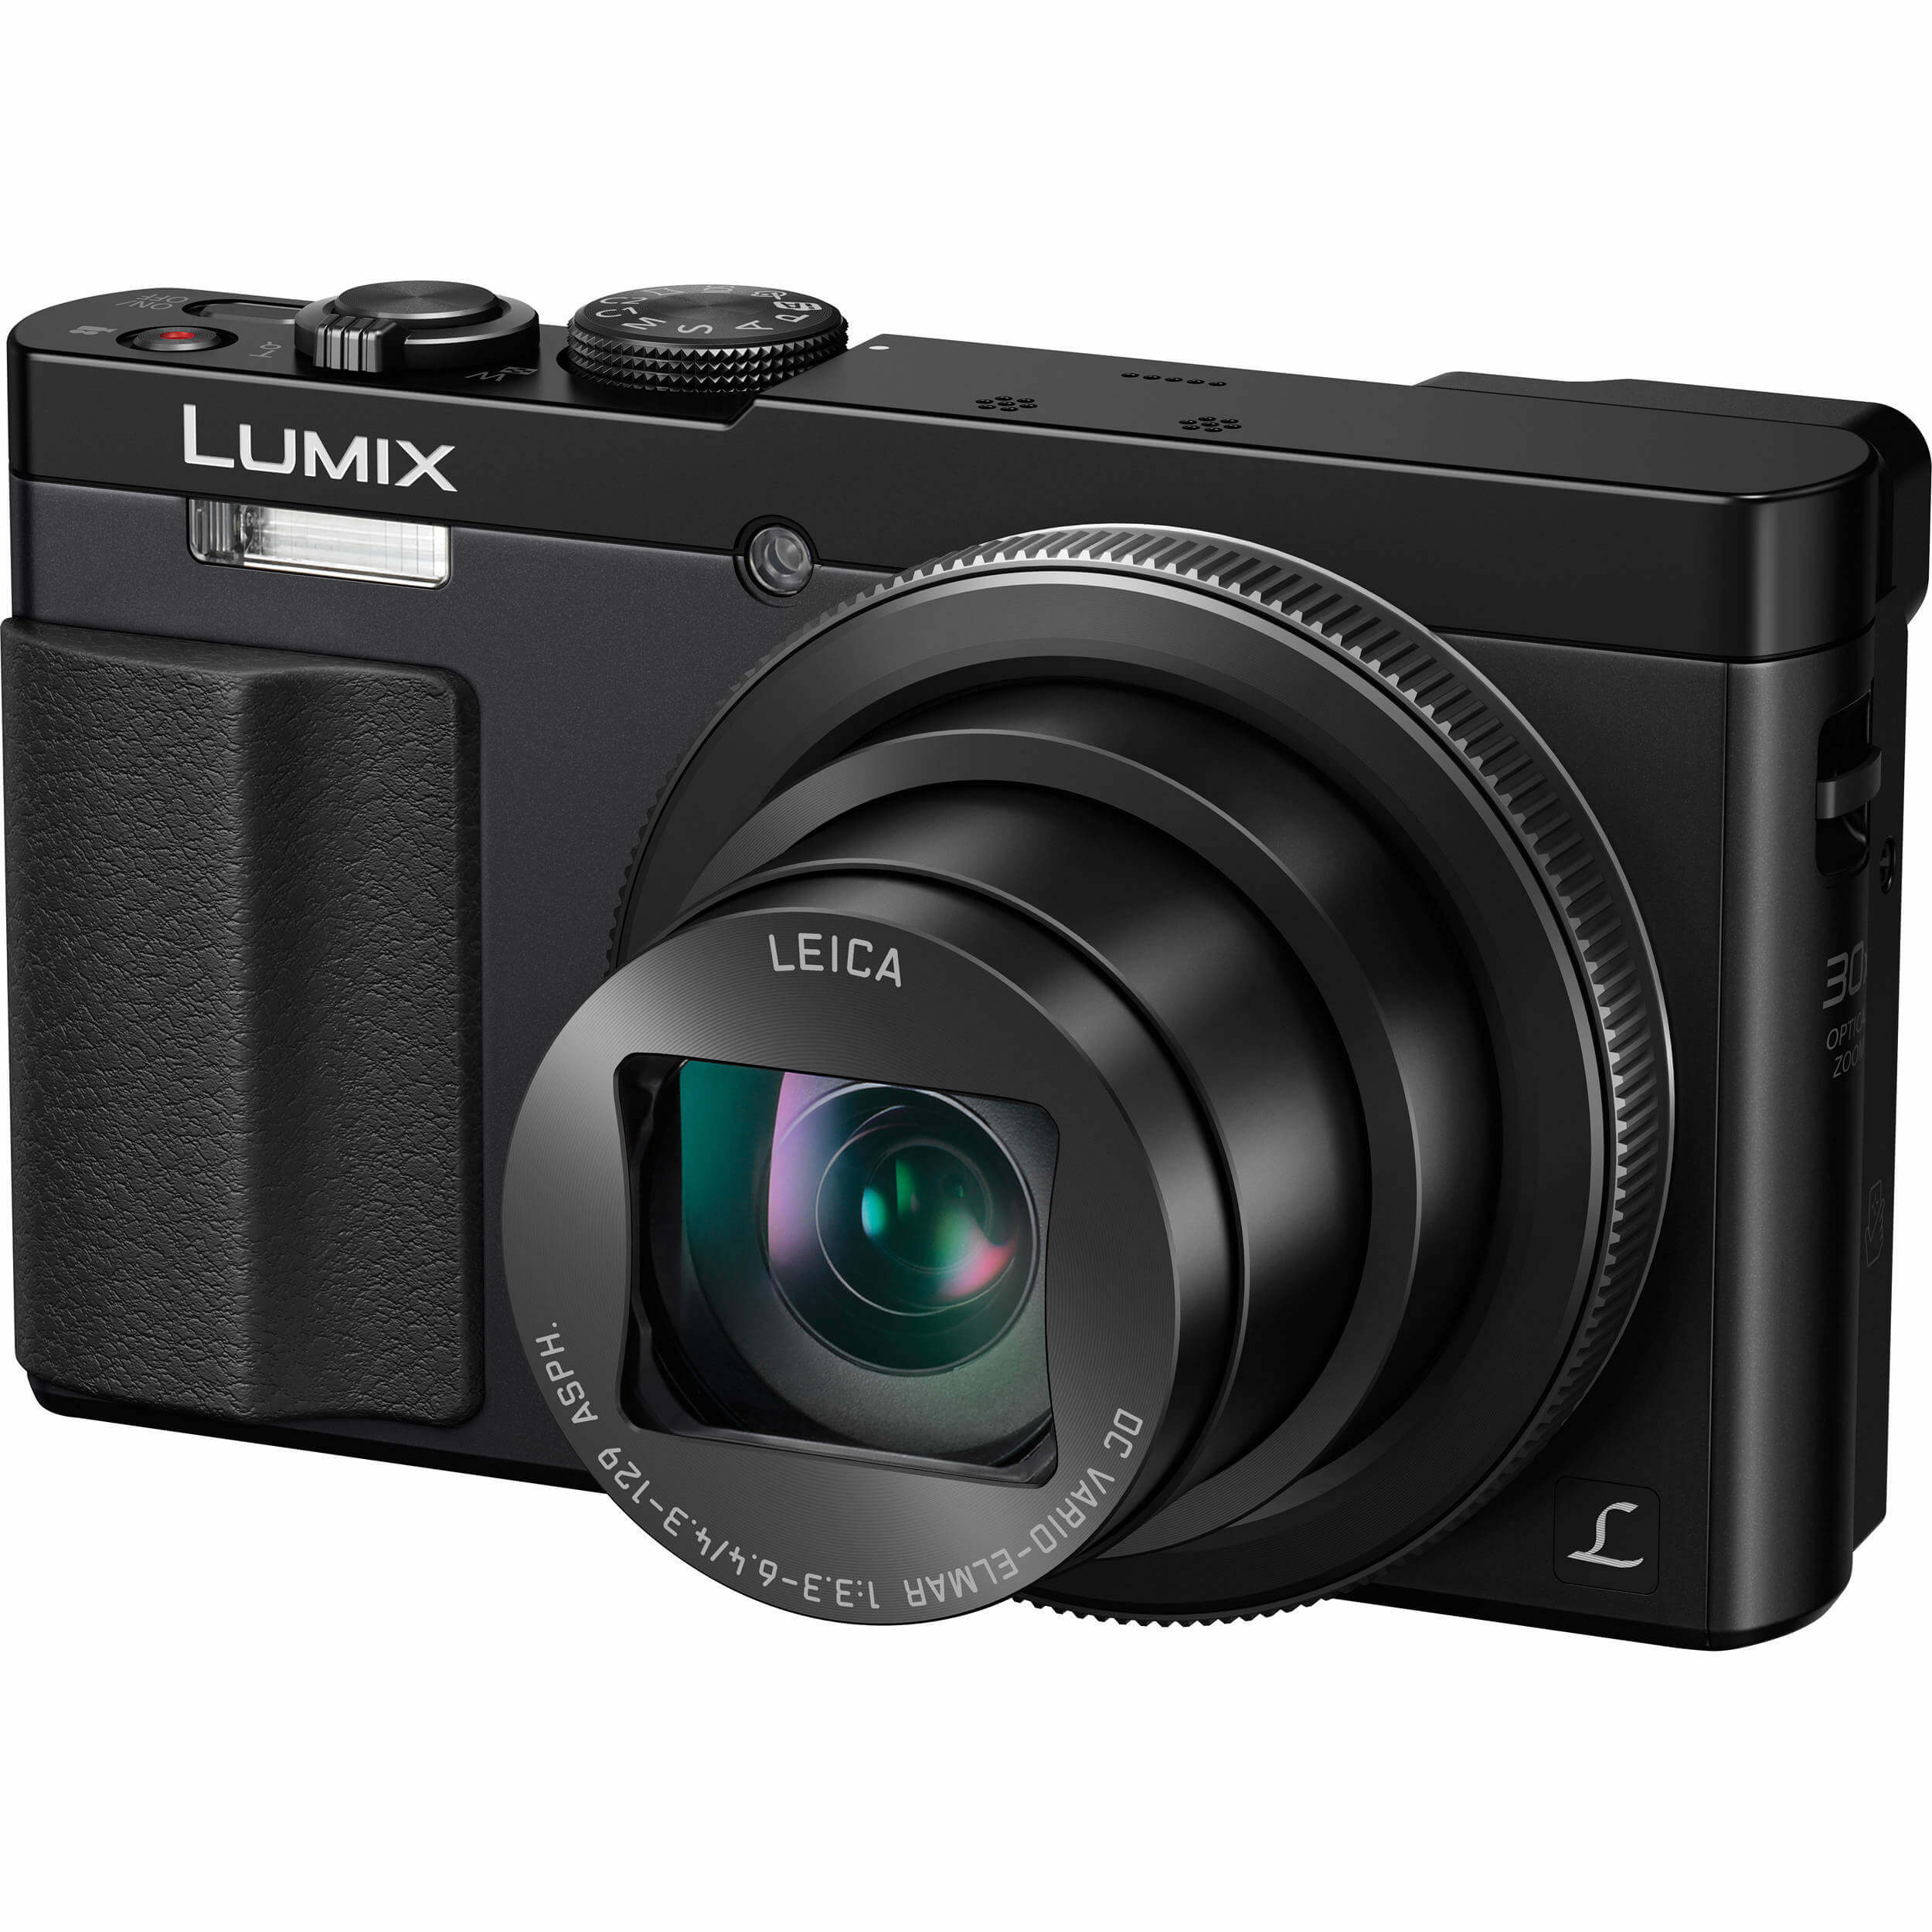 Panasonic Lumix ZS50 cheap vlogging camera